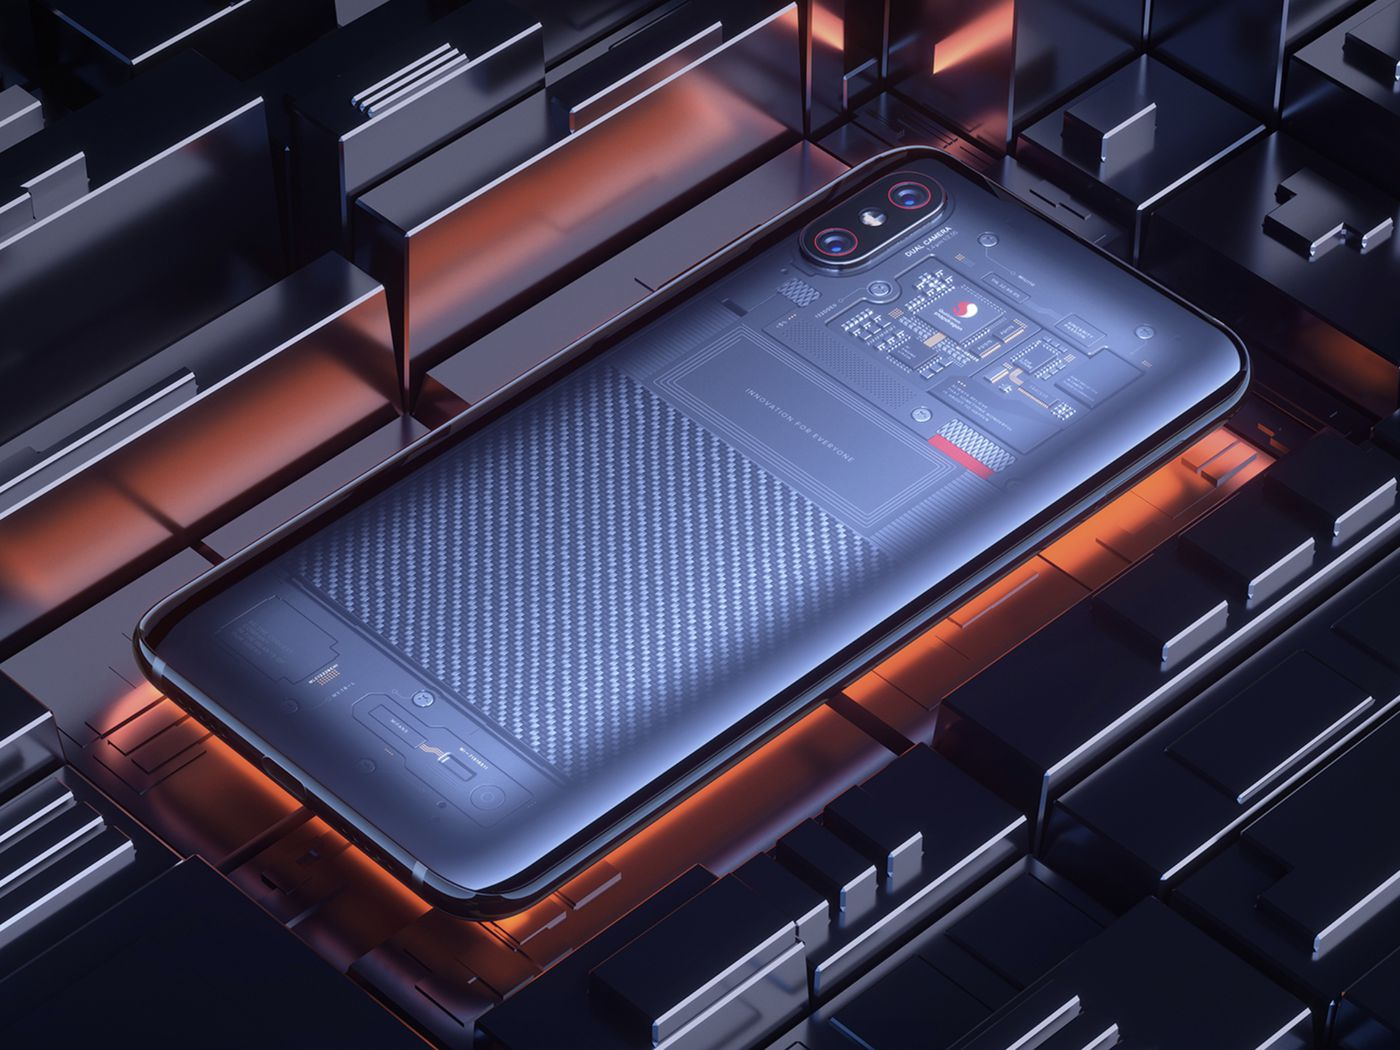 Xiaomi Mi 8 Announced Specs Release Date And Pricing The Verge Buy Circuit Board Printing Machine Cheap Pricescreen